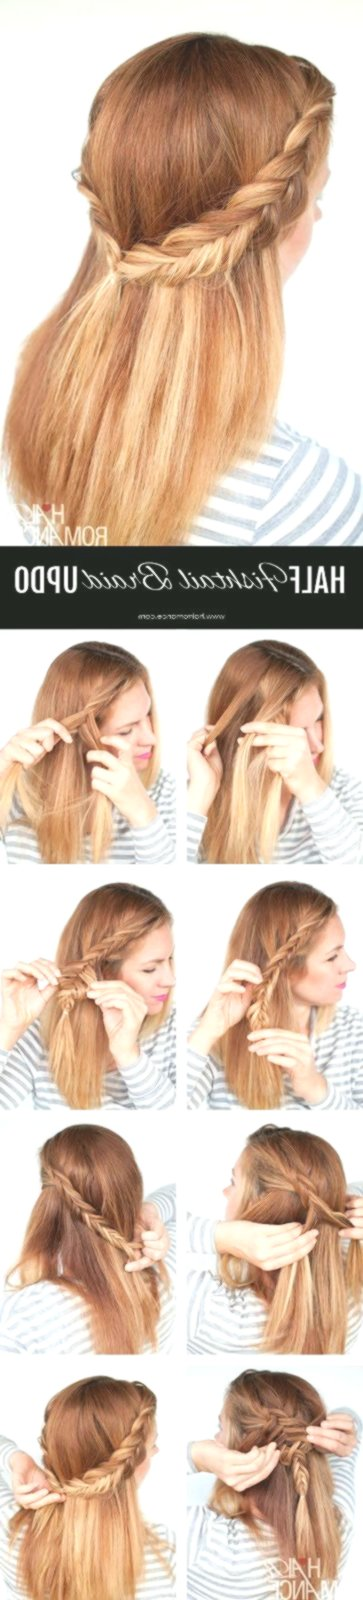 nice youtube hairstyles pattern-top youtube hairstyles ideas